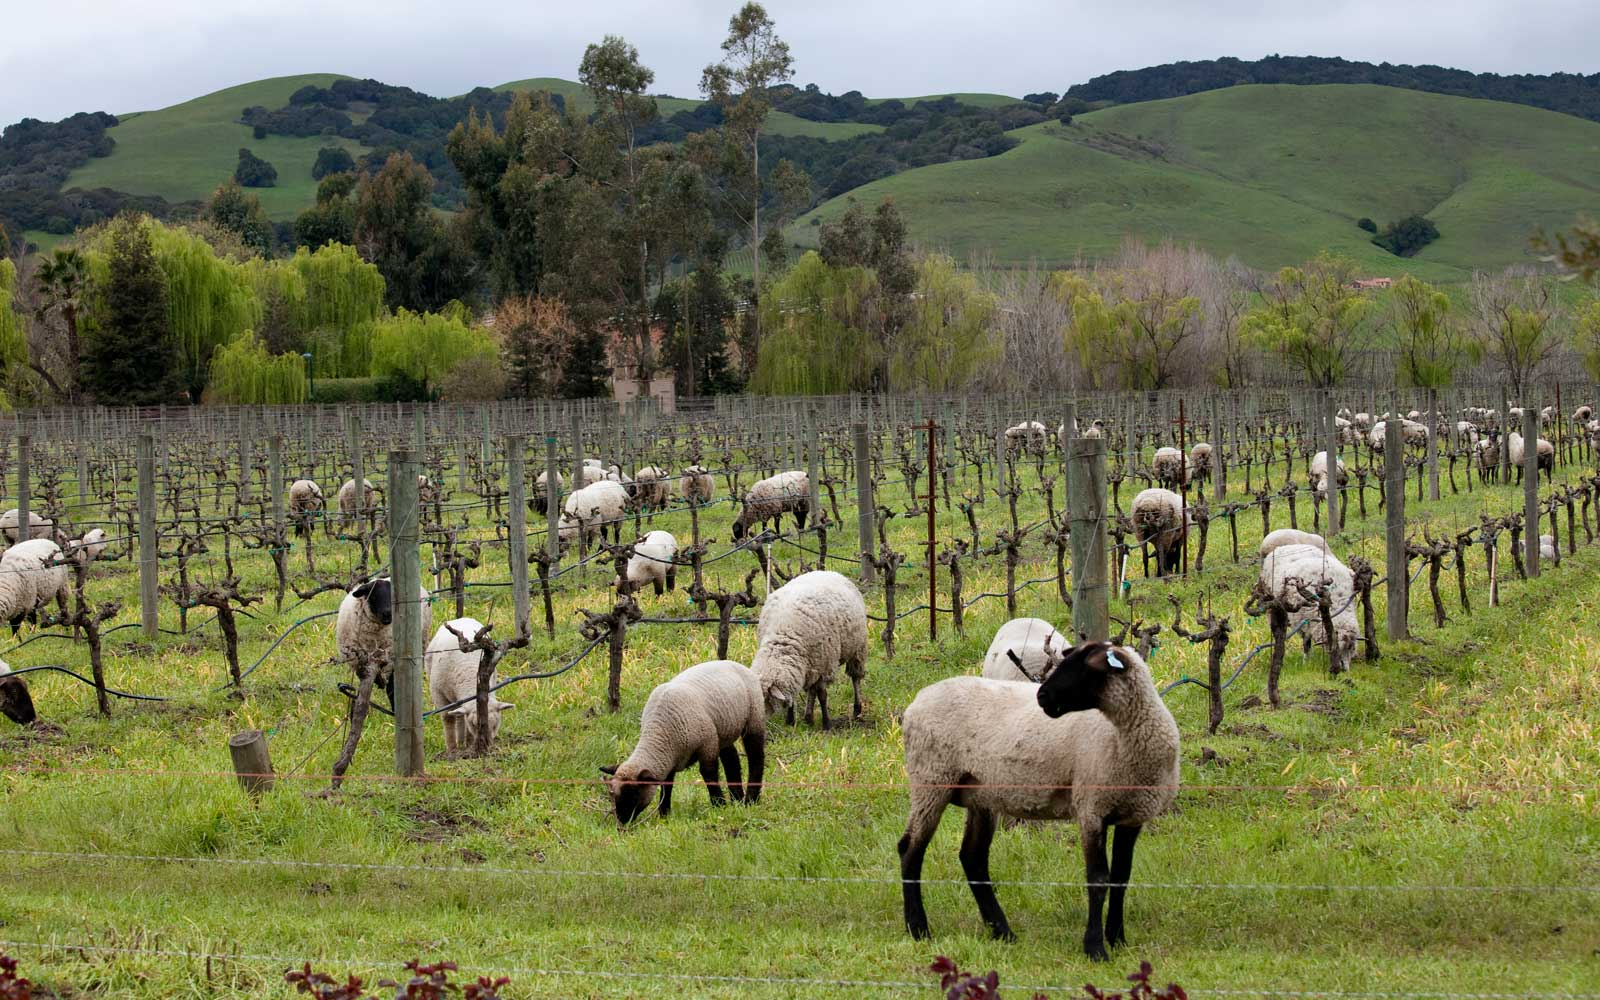 Sheep grazing for weeds in in Cline vineyard.